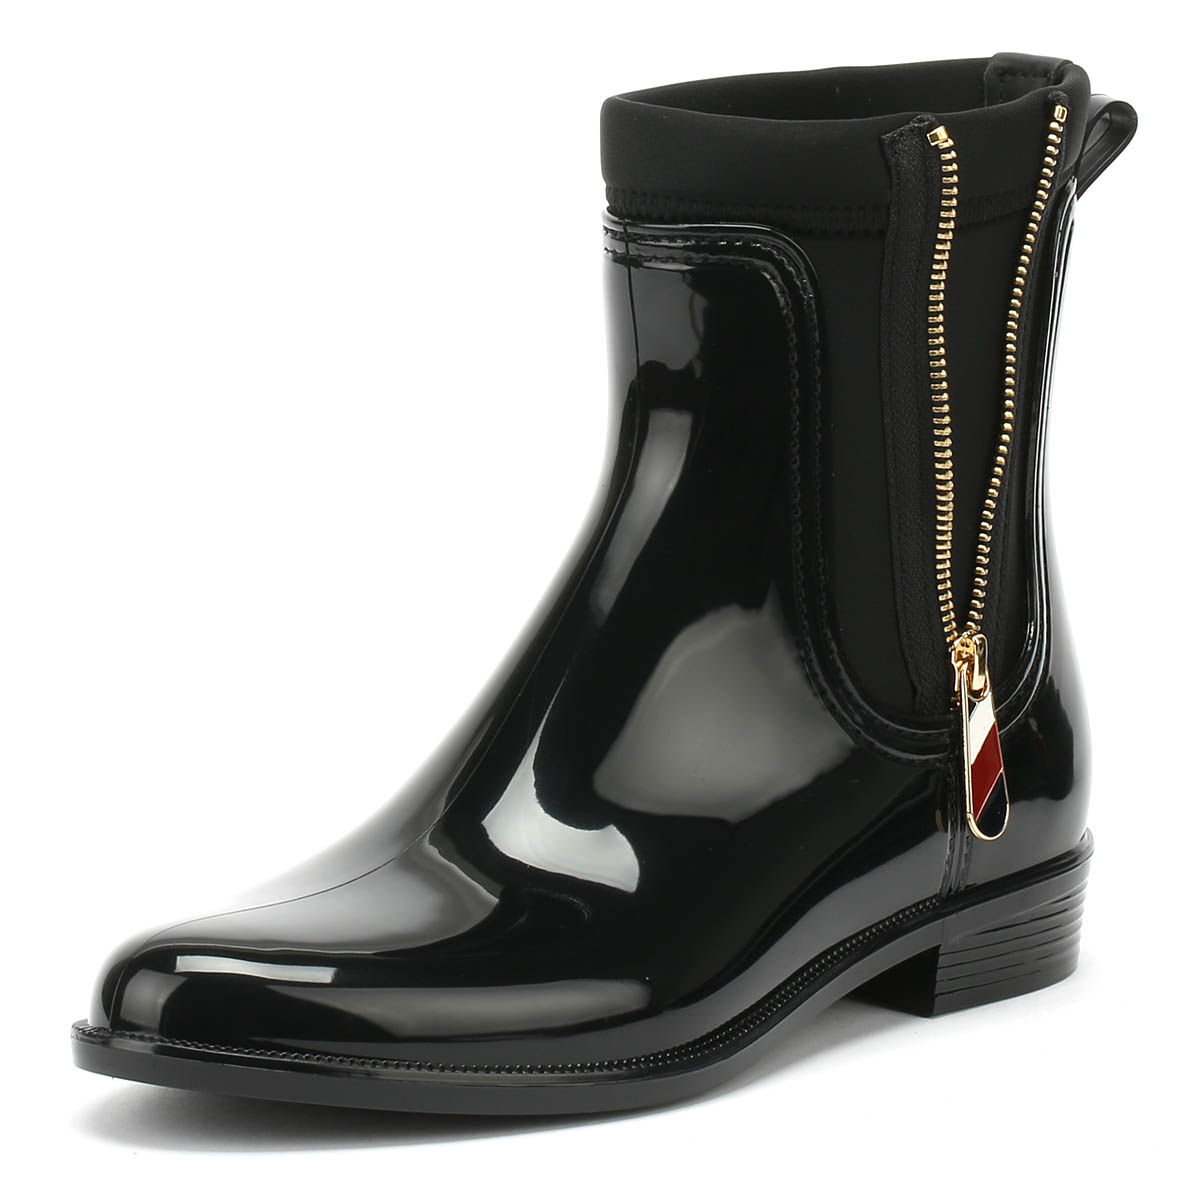 b63c45c2e16e Details about Tommy Hilfiger Womens Rain Boots Black Material Mix Zipped  Casual Ankle Shoes